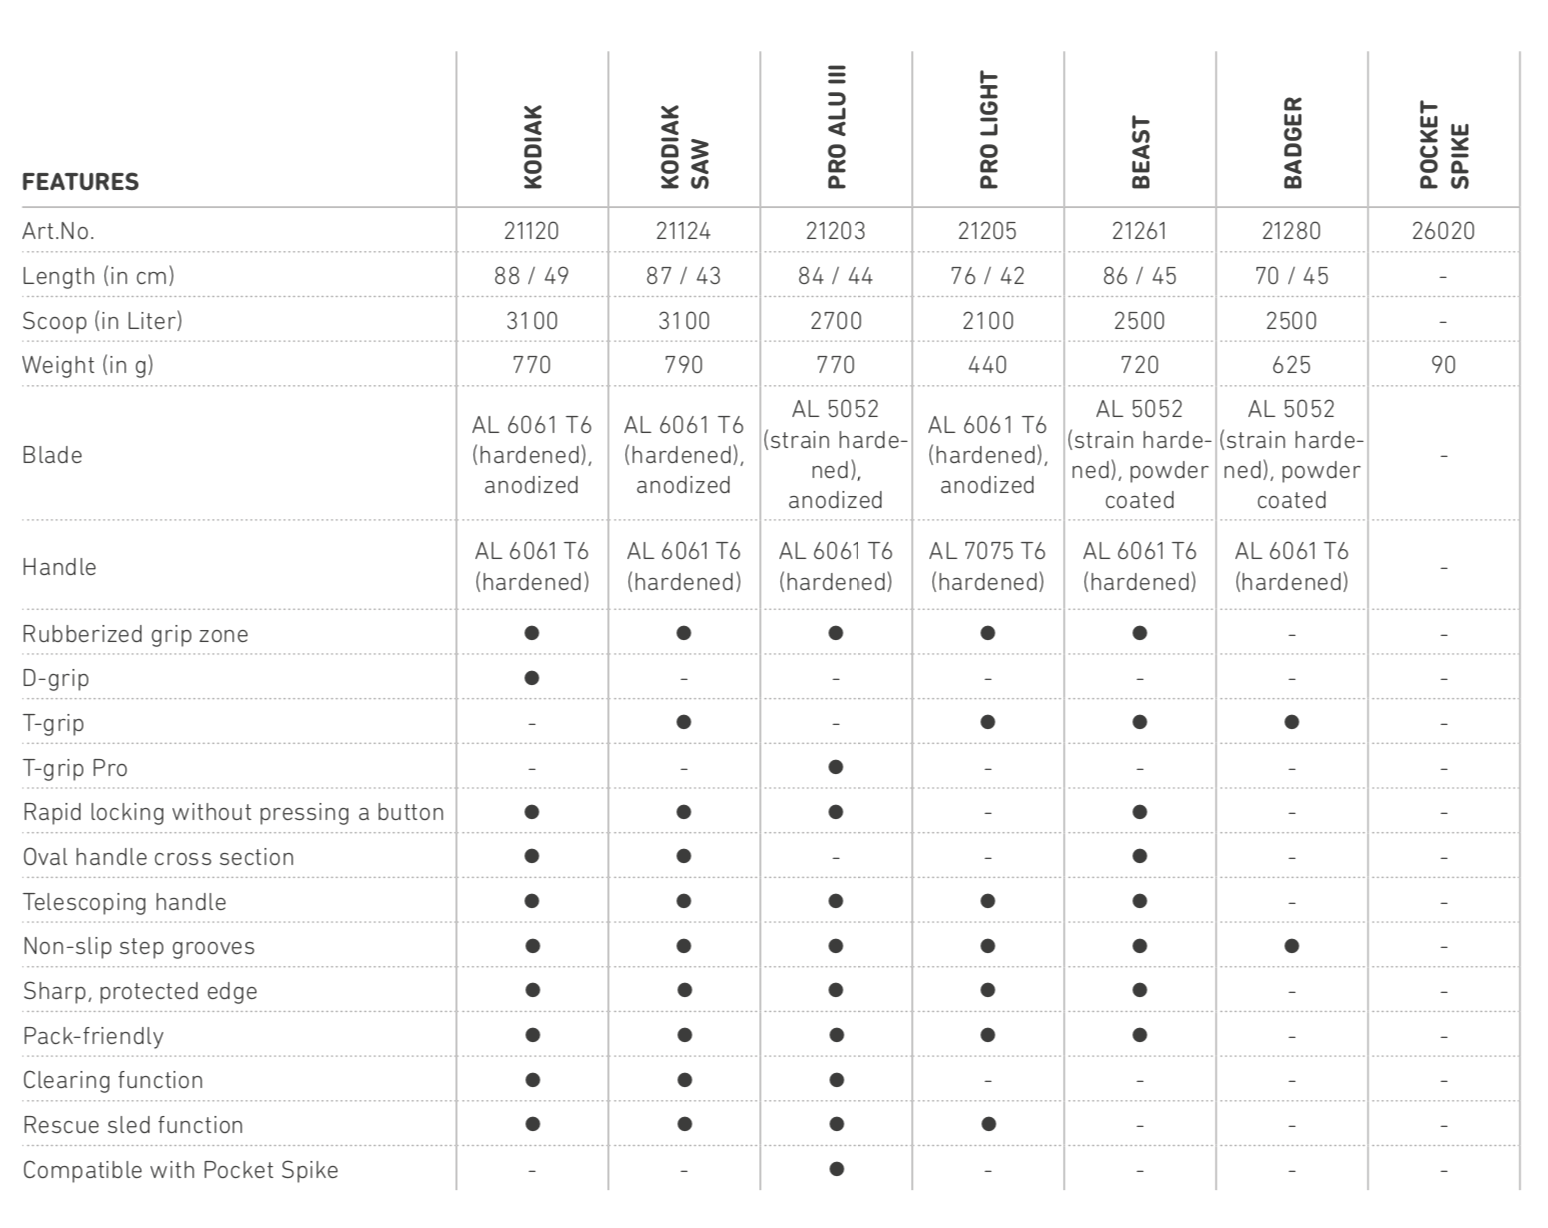 Ortovox Shovel Comparison Table